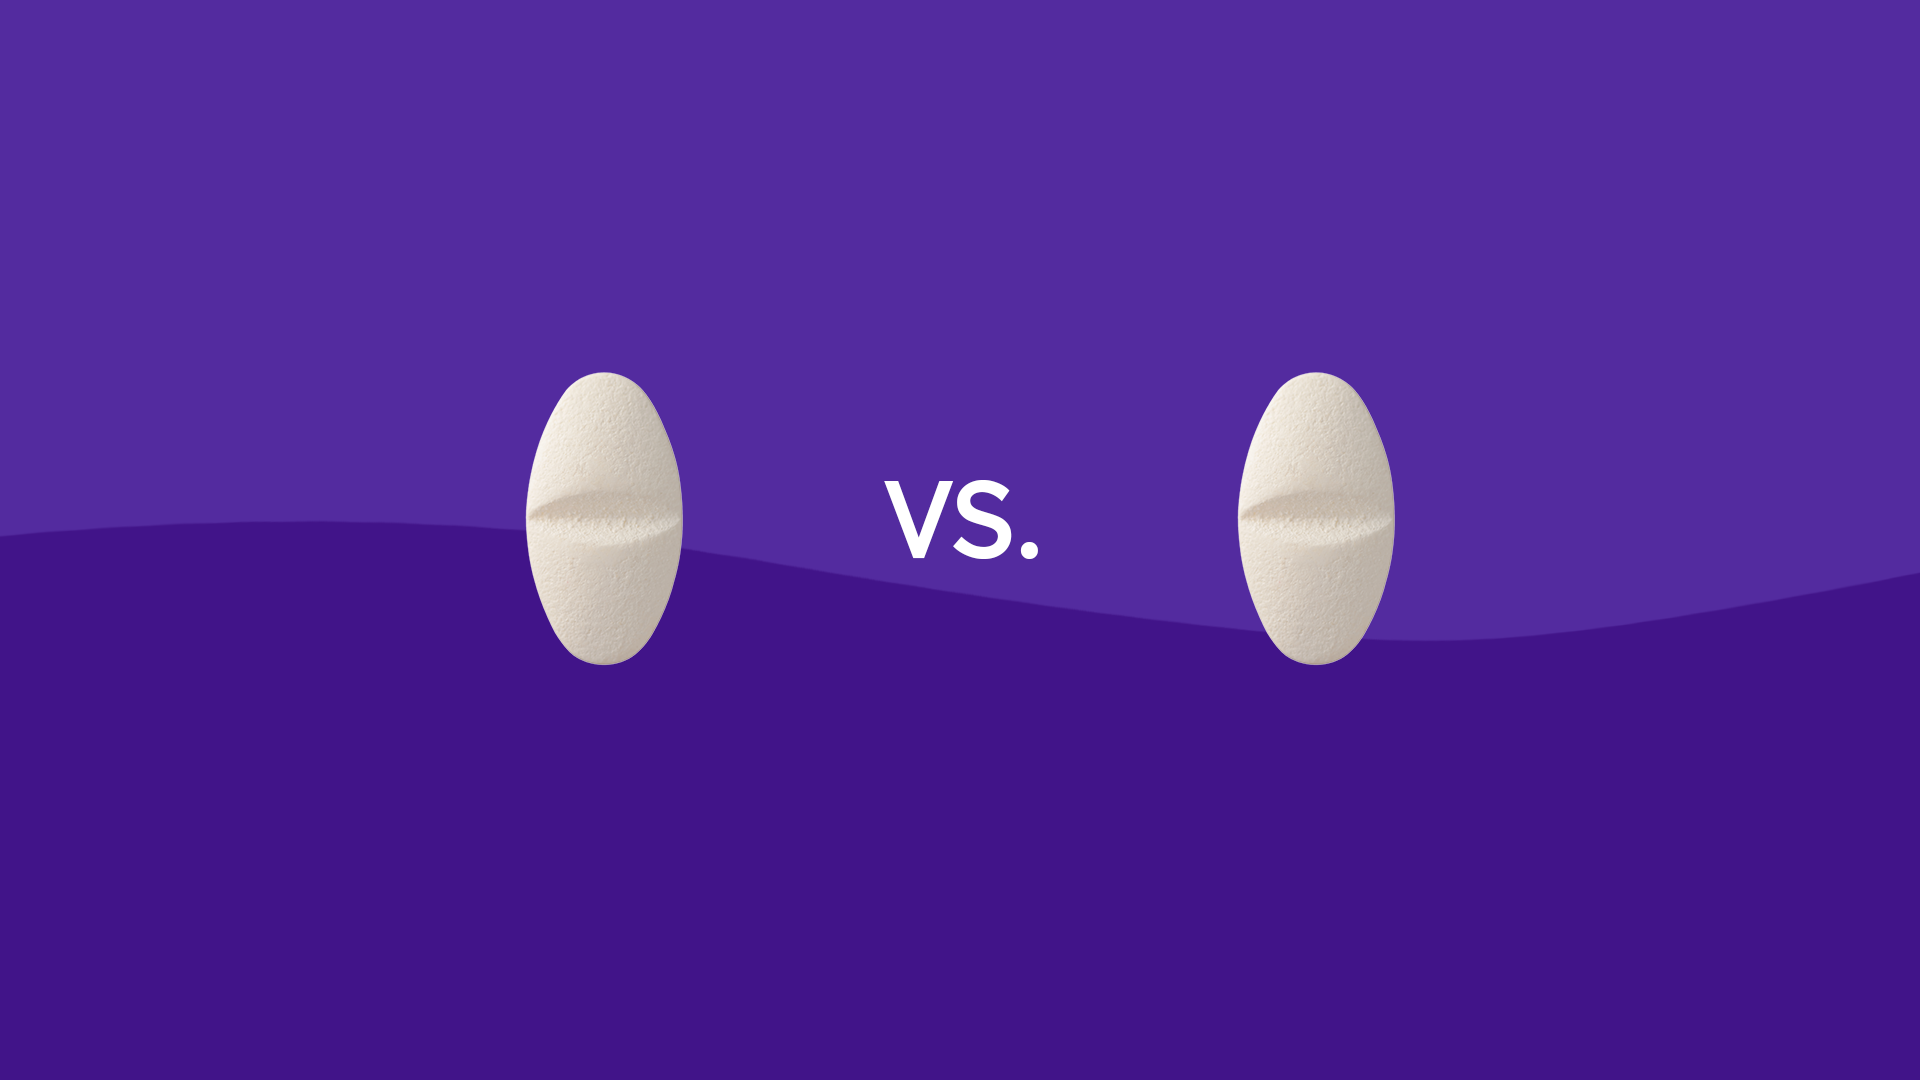 Zoloft vs. Prozac: Differences, similarities, and which is better for you